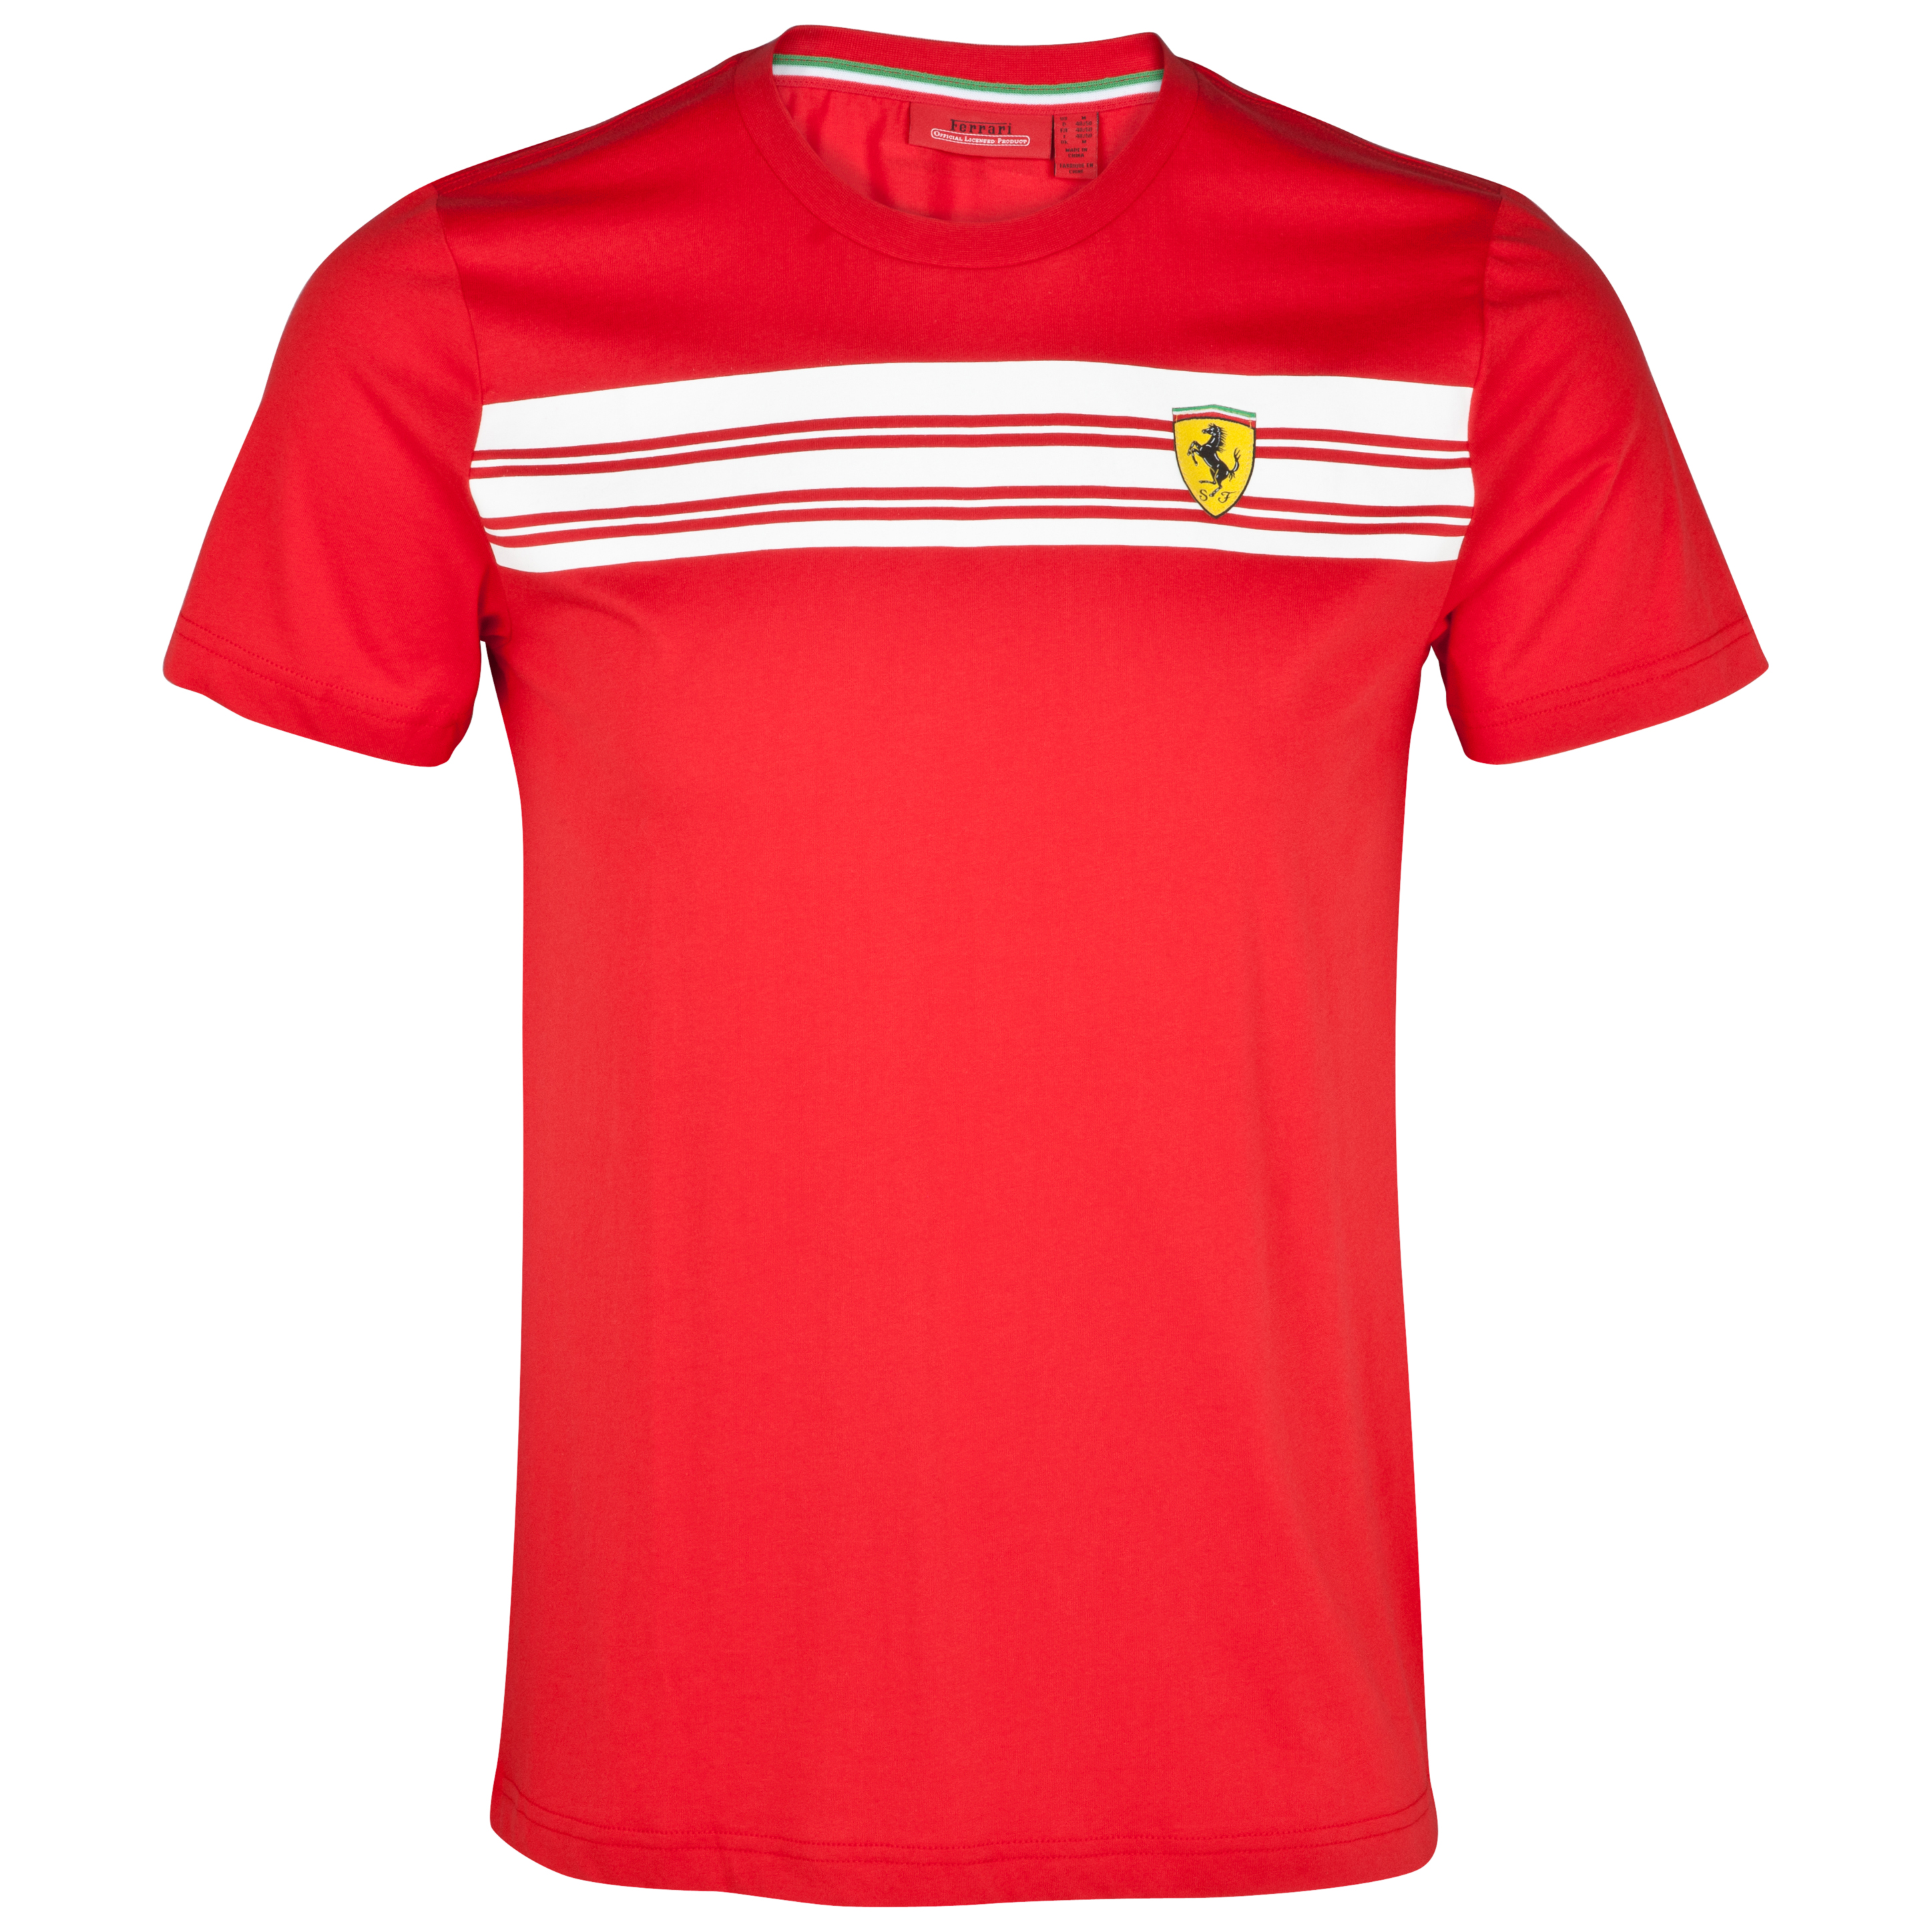 Scuderia Ferrari Scuderia Striped T-Shirt - Red